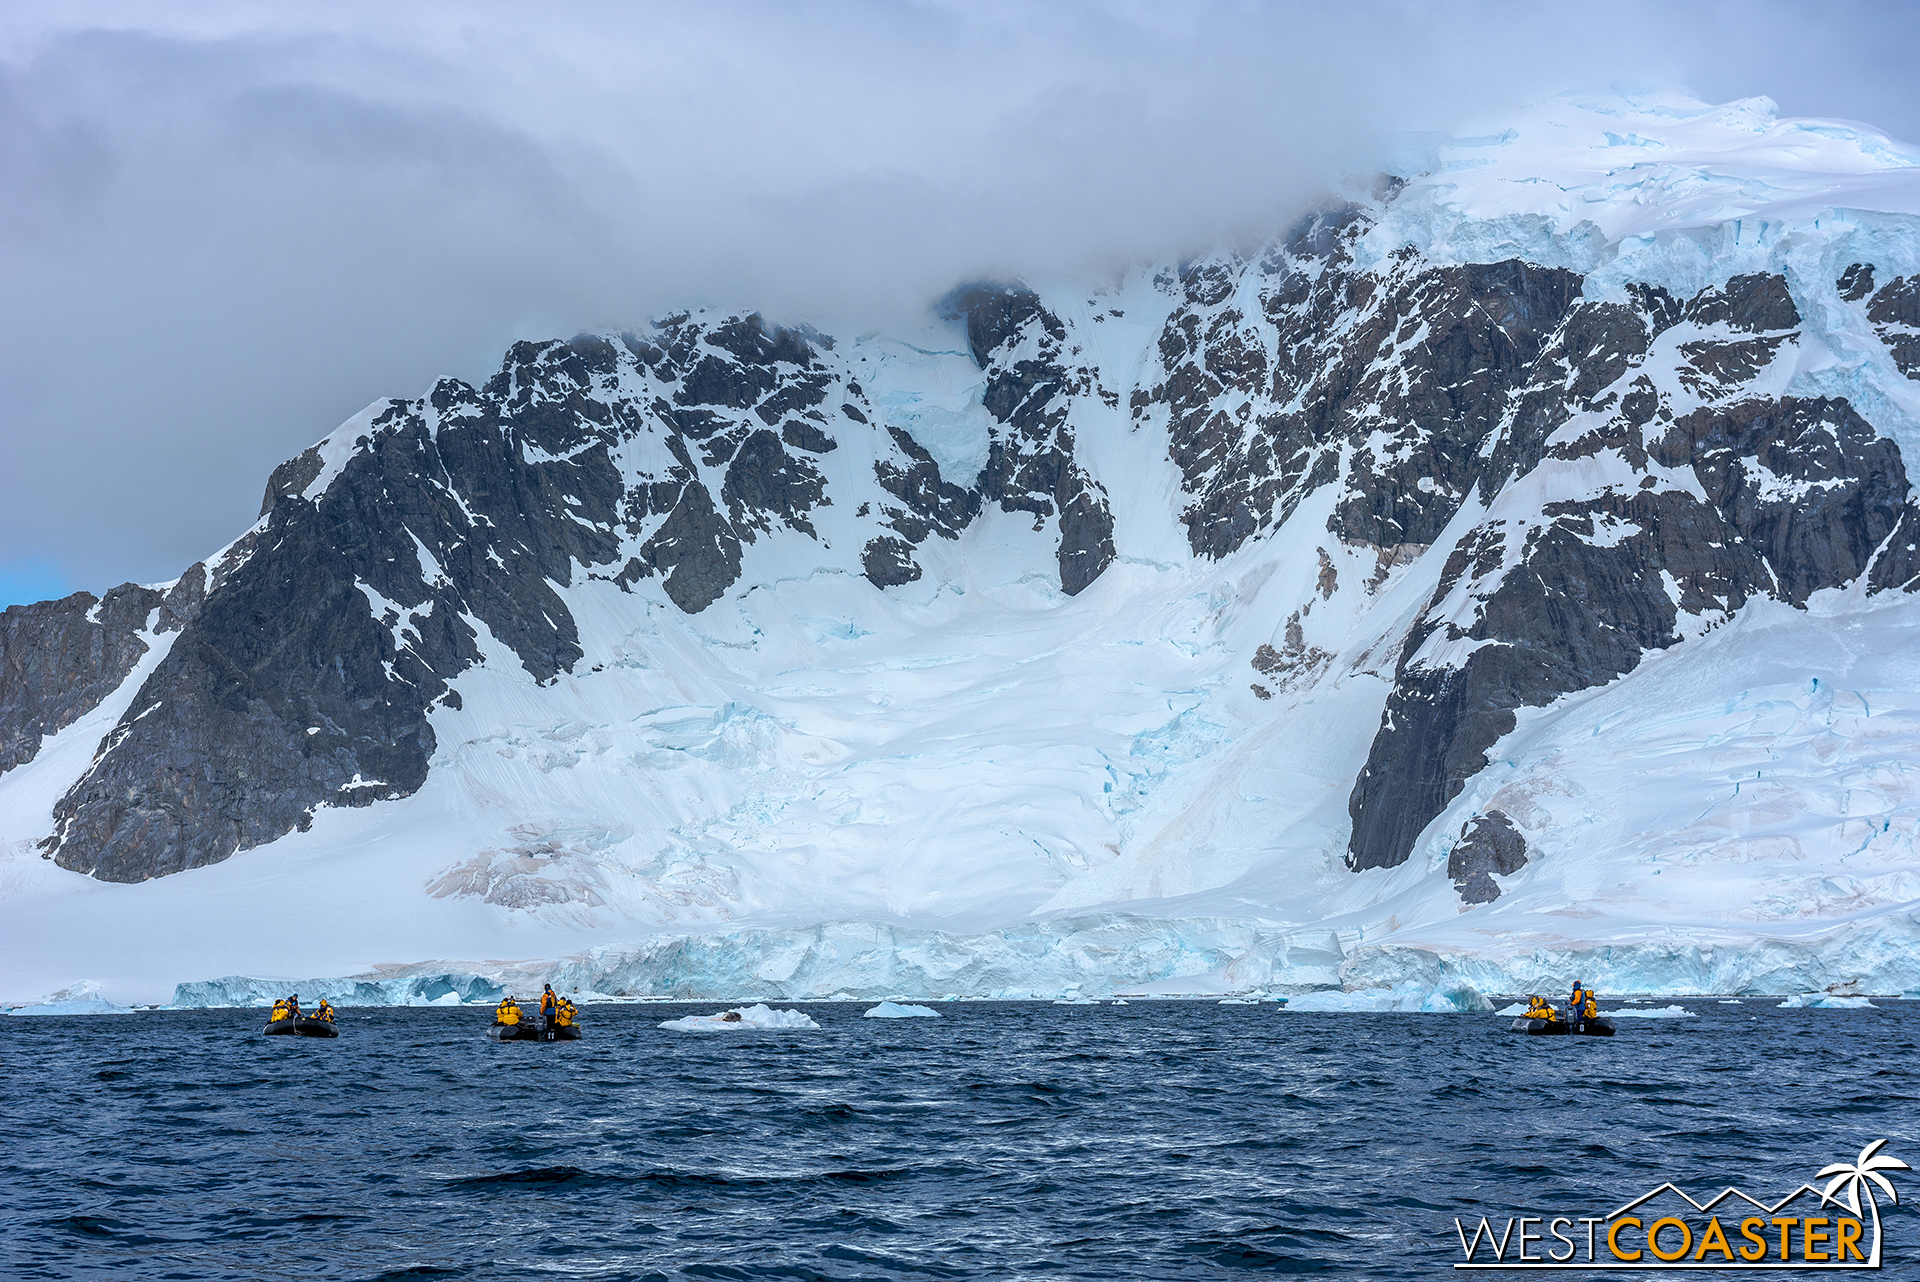 Zodiacs exploring out on the water.